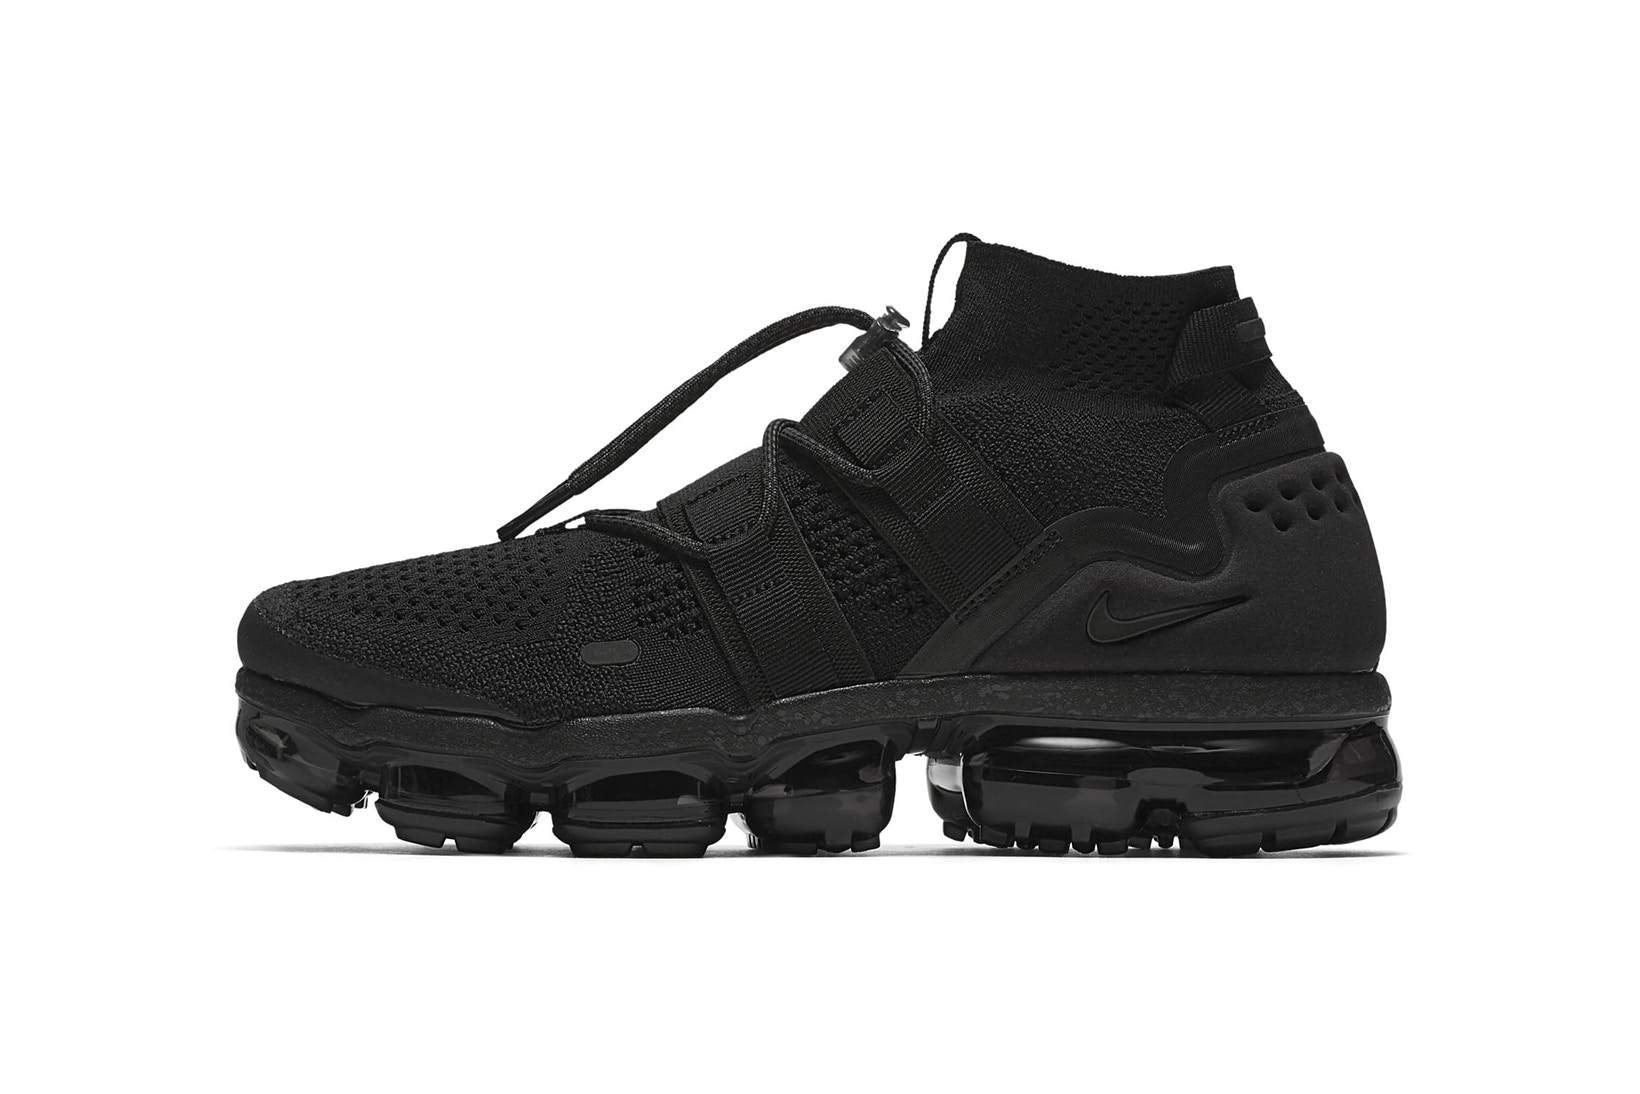 Nike Trail-Inspired Air VaporMax Flyknit Utility 'Maximum Black' [SneakPeak] nike air vapormax flyknit utility maximum black release 1